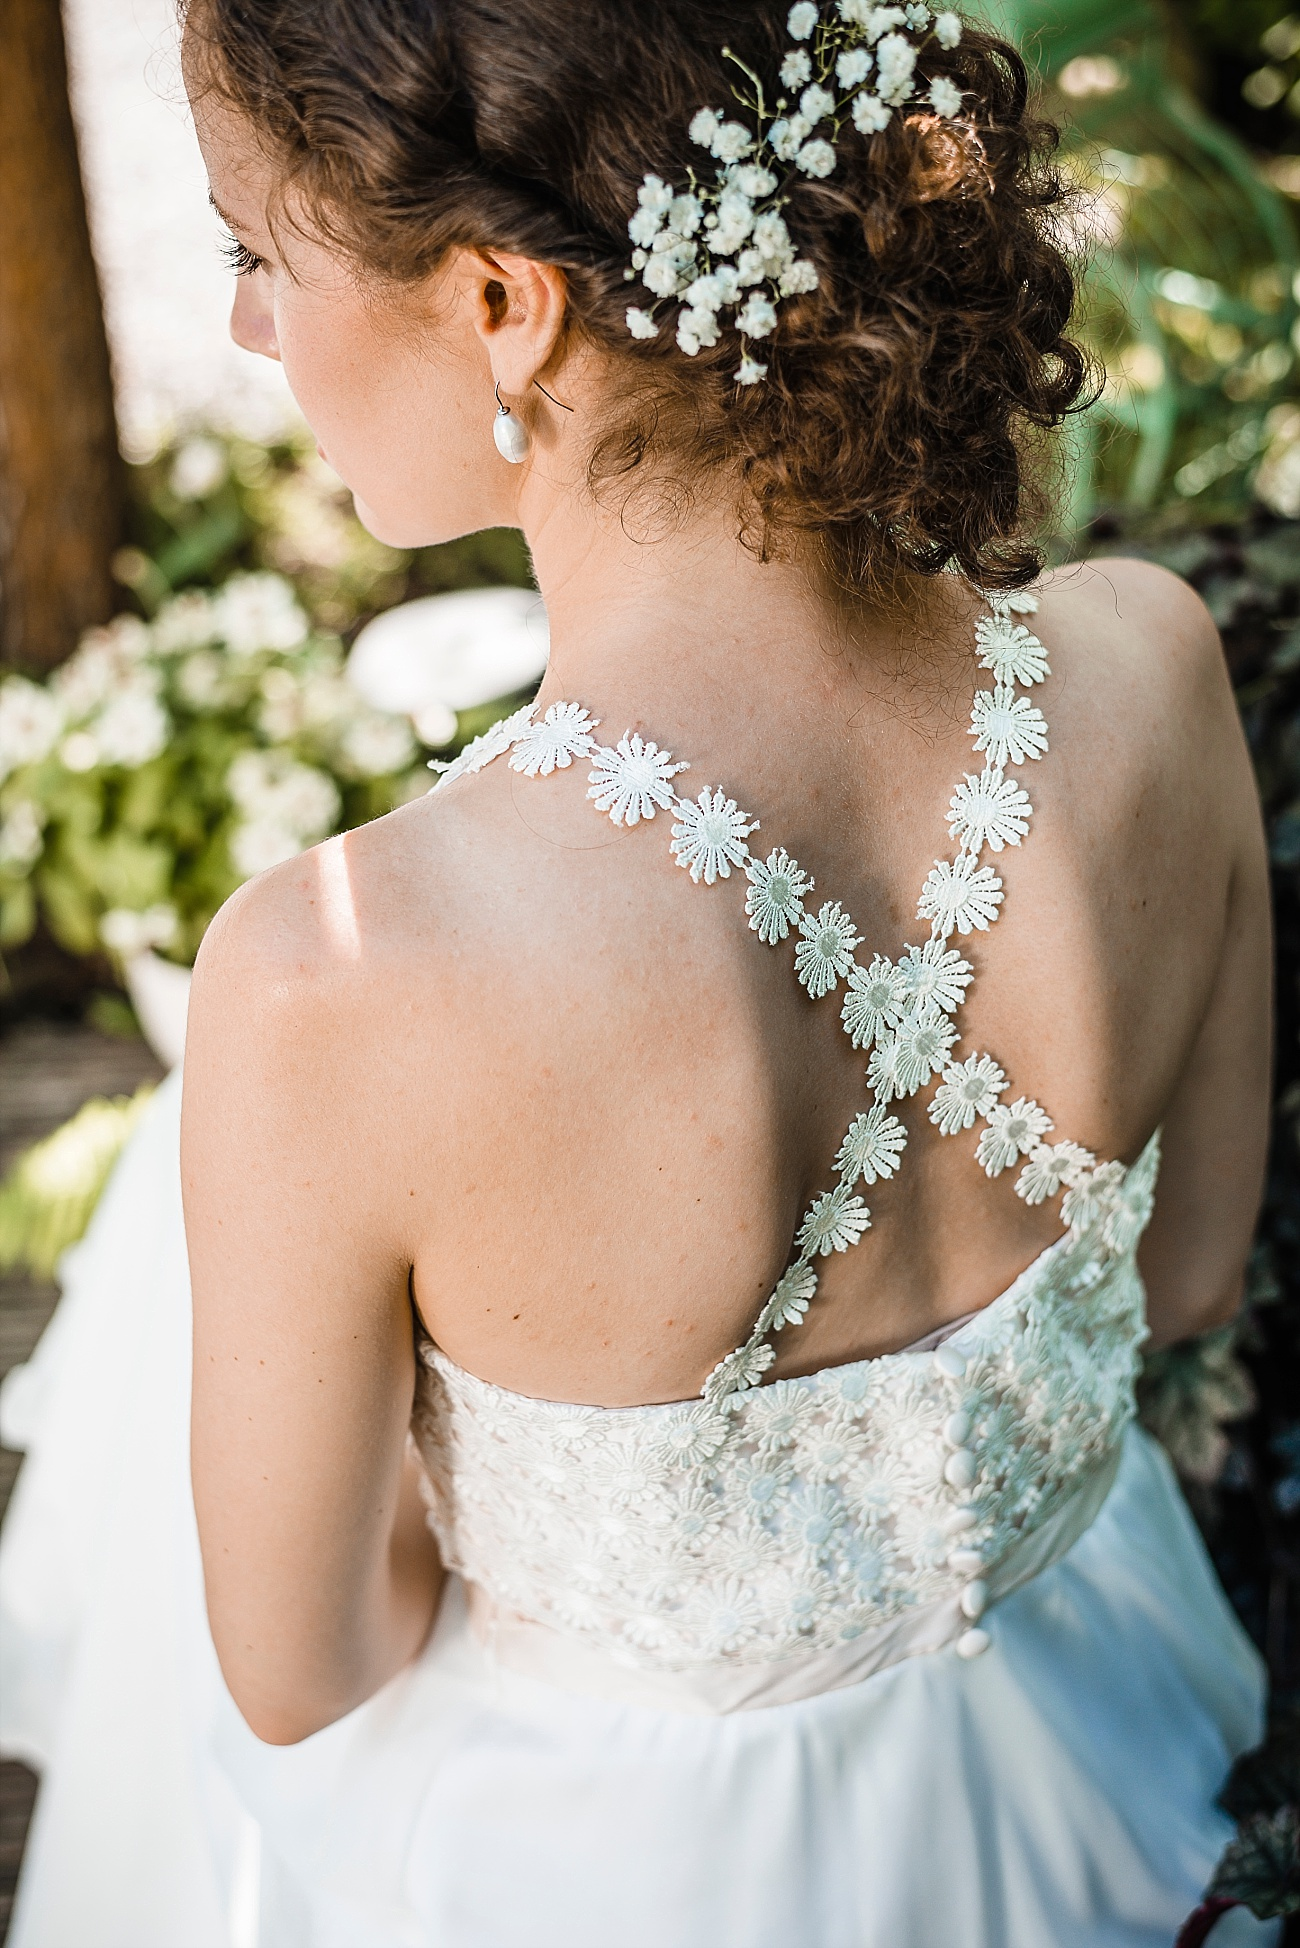 Claudia Heller Brautkleider 2017 | Hochzeitsblog The Little Wedding ...